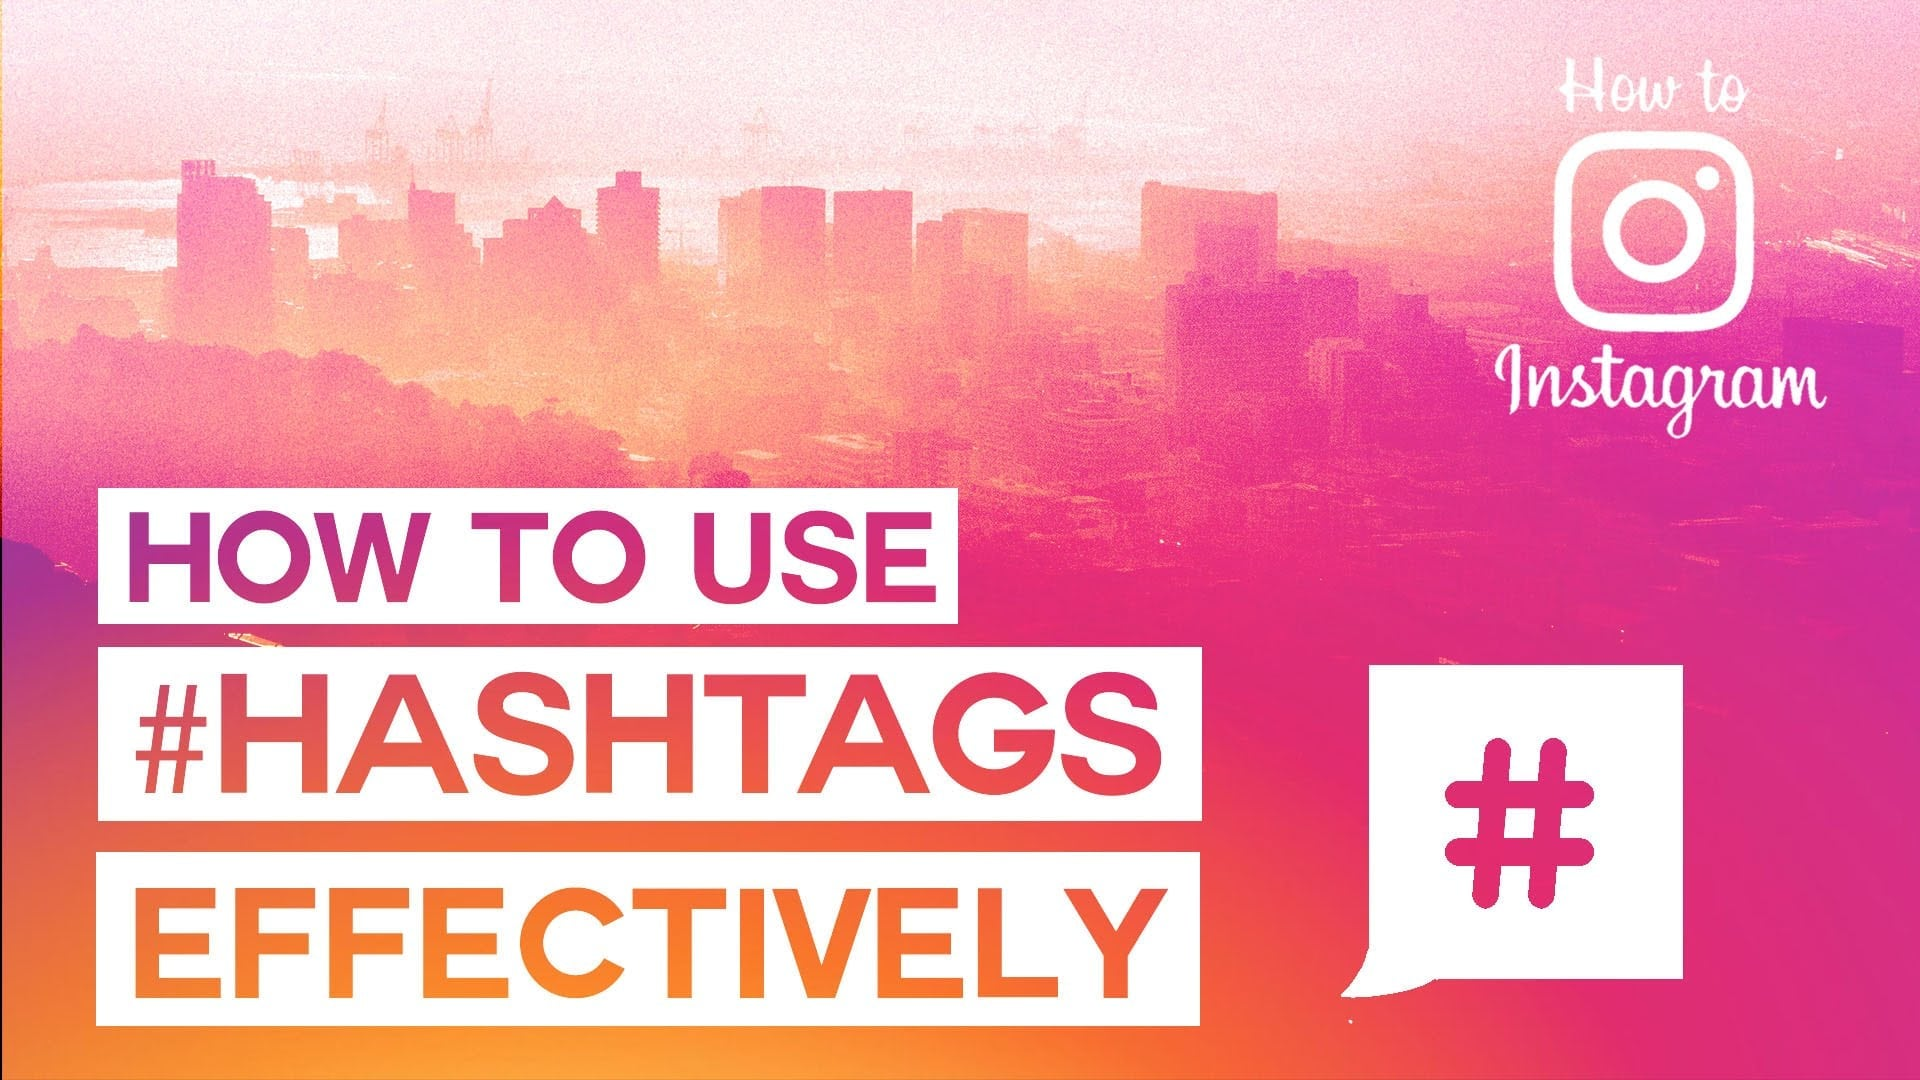 Most Popular Laptops Using Hashtags Effectively To Grow Your Instagram Account